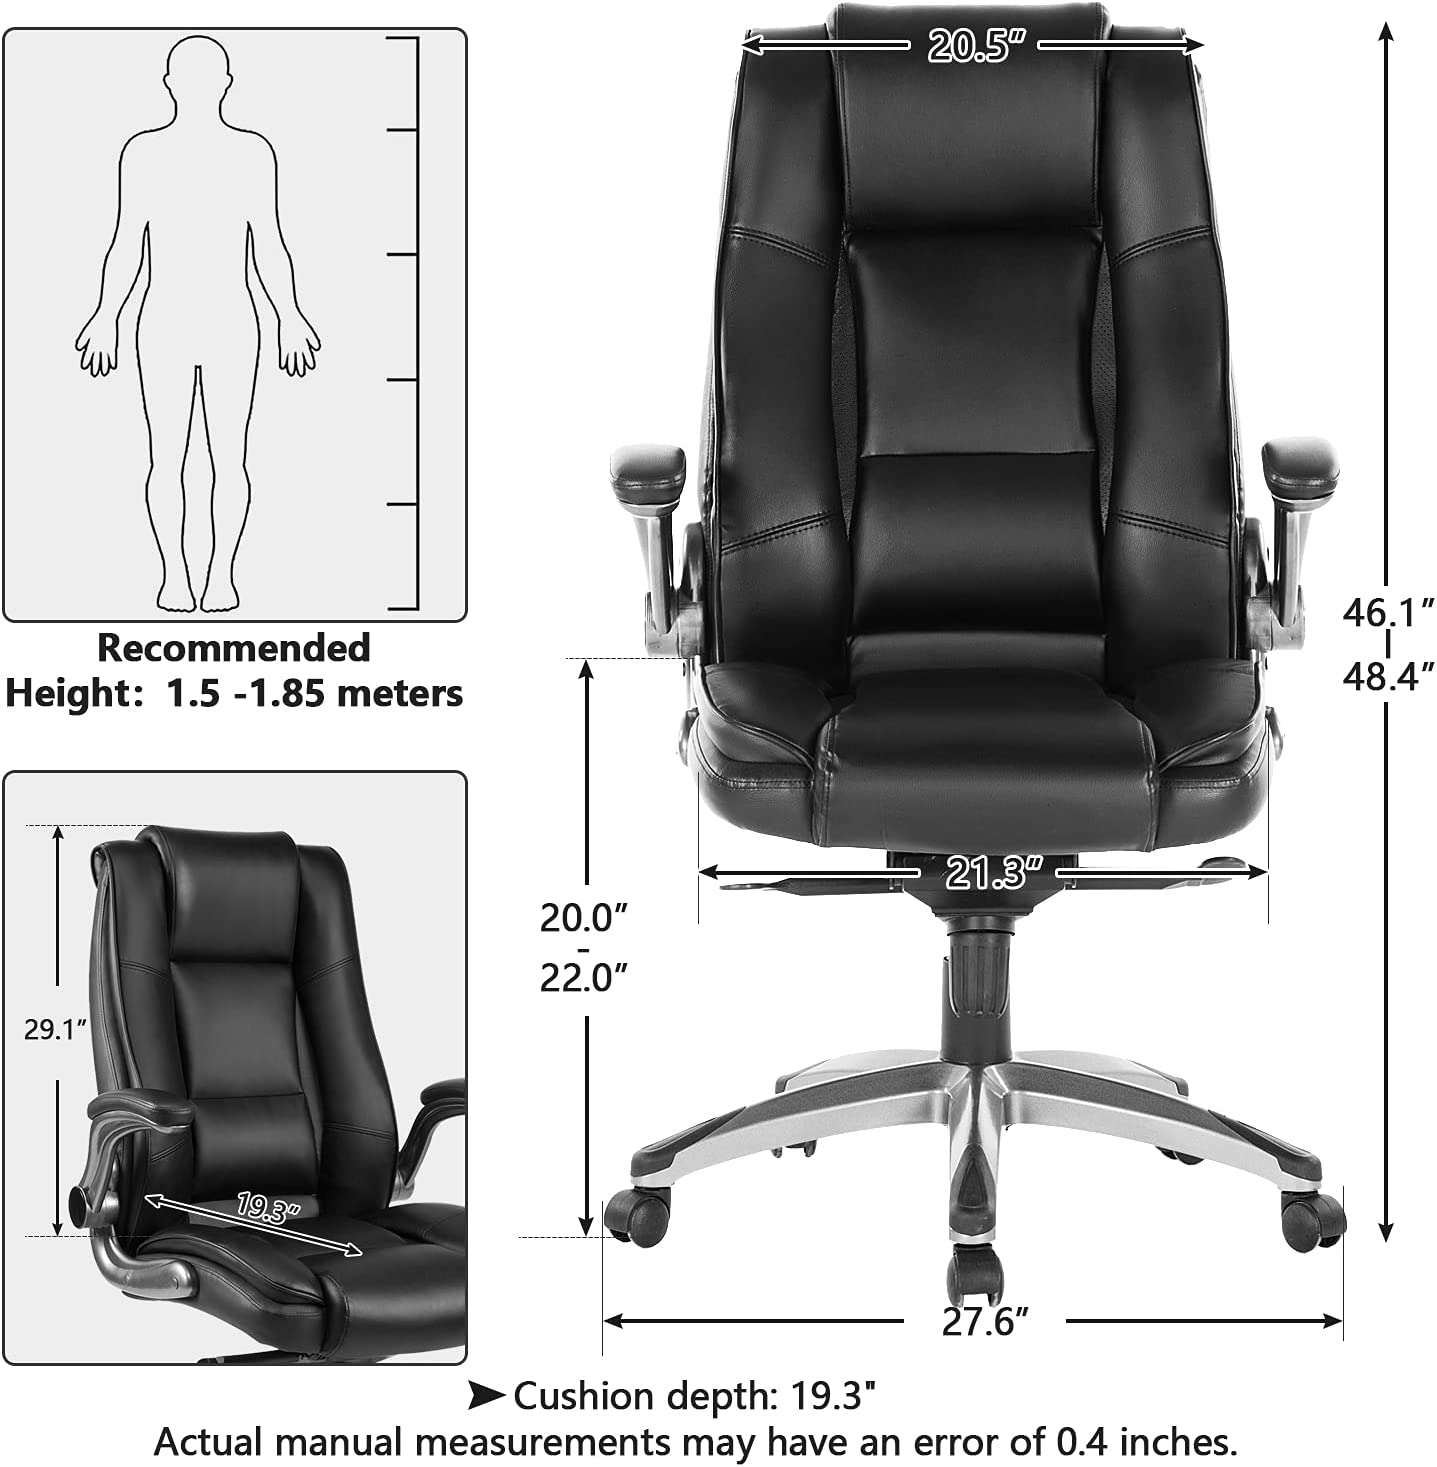 Buy Ergonomic Executive Home Office Chairs High Back Swivel Computer Desk Chairs With Flip Up Arms And Height Adjustment Office Task Desk Chair Swivel Home Comfort Chairs Black Online In Germany B0967zzghh